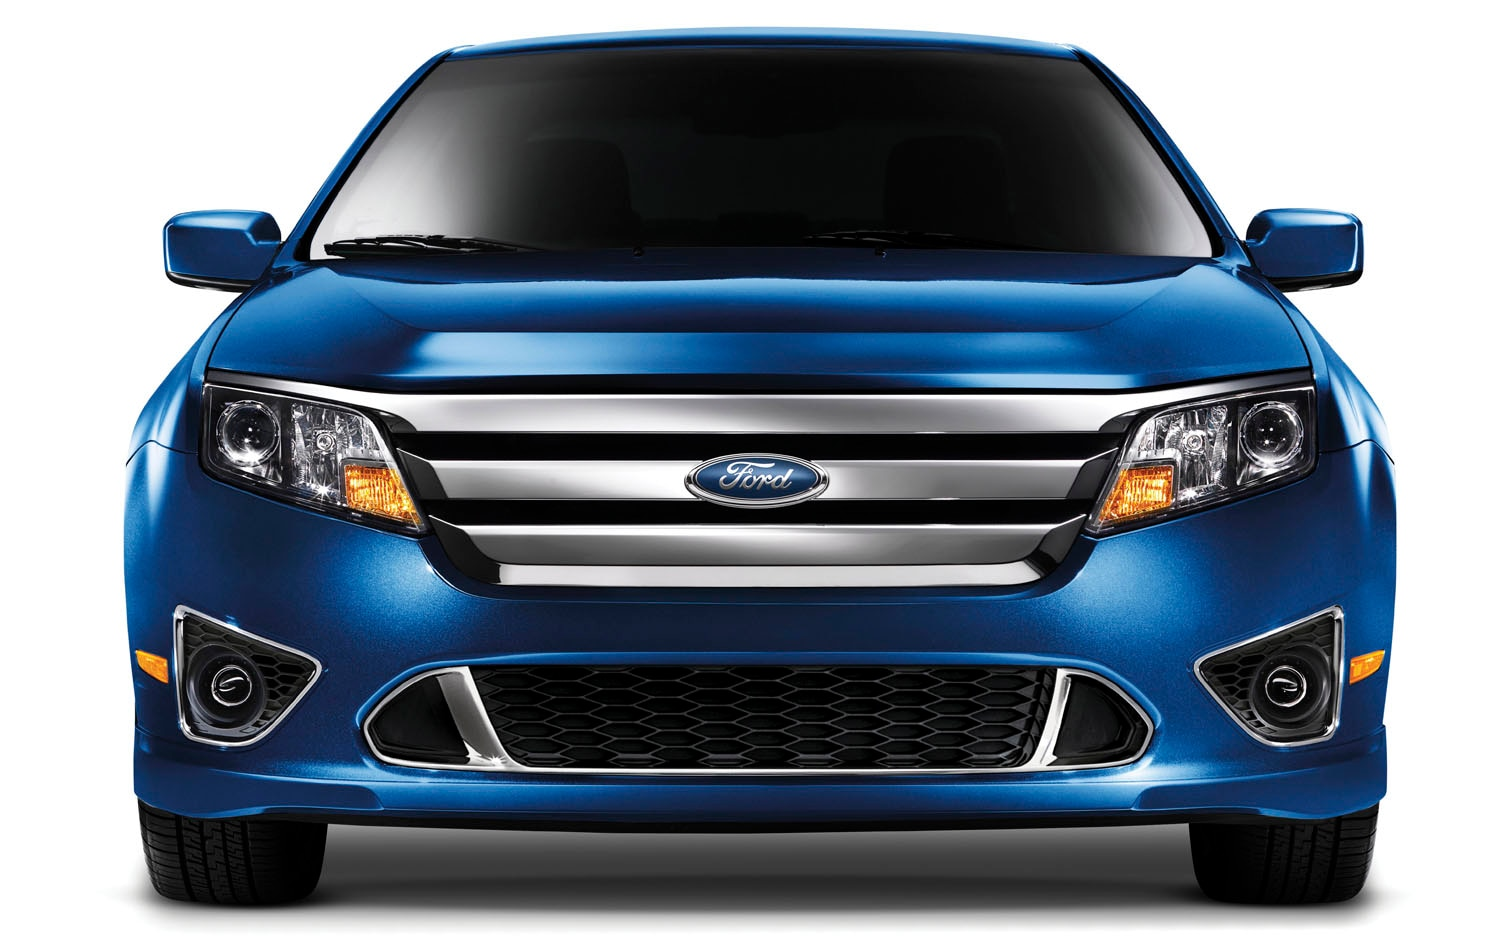 2011 Ford Fusion Front View1